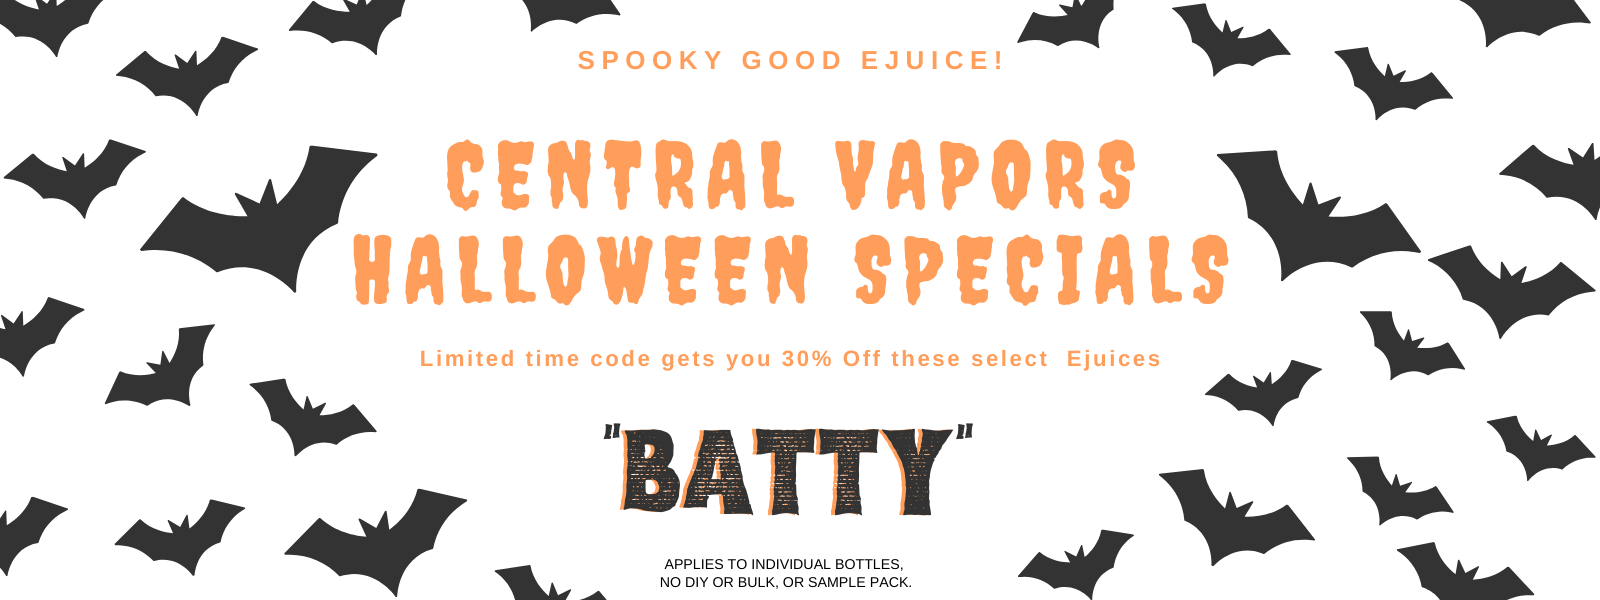 Central Vapors Halloween special